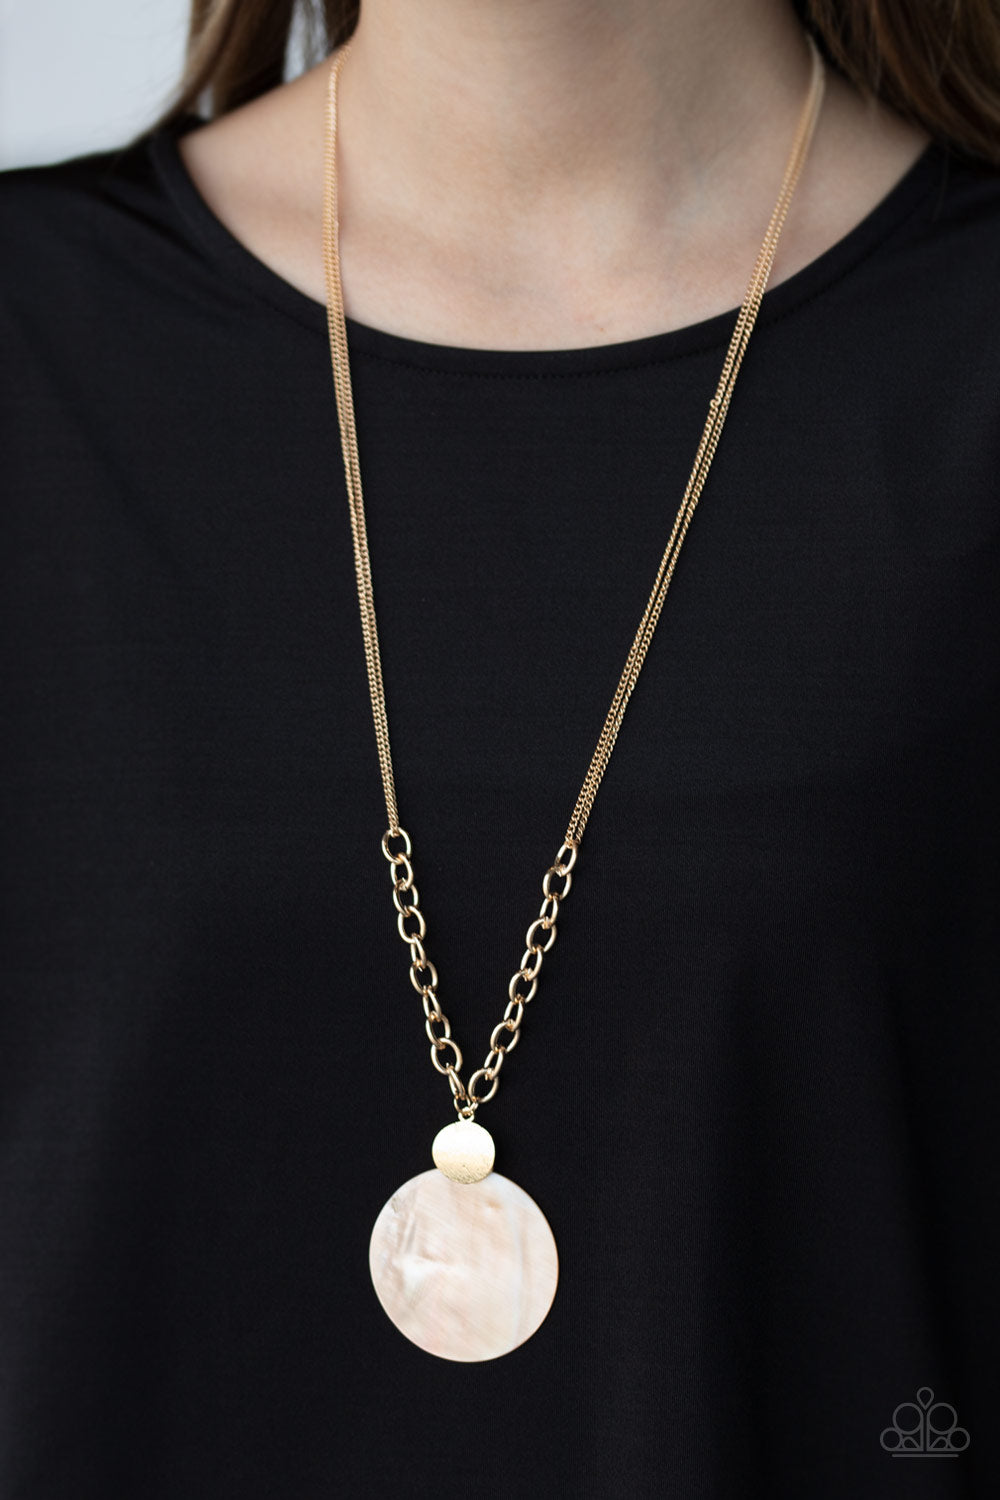 Paparazzi Accessories A Top-SHELLer - Gold Necklaces